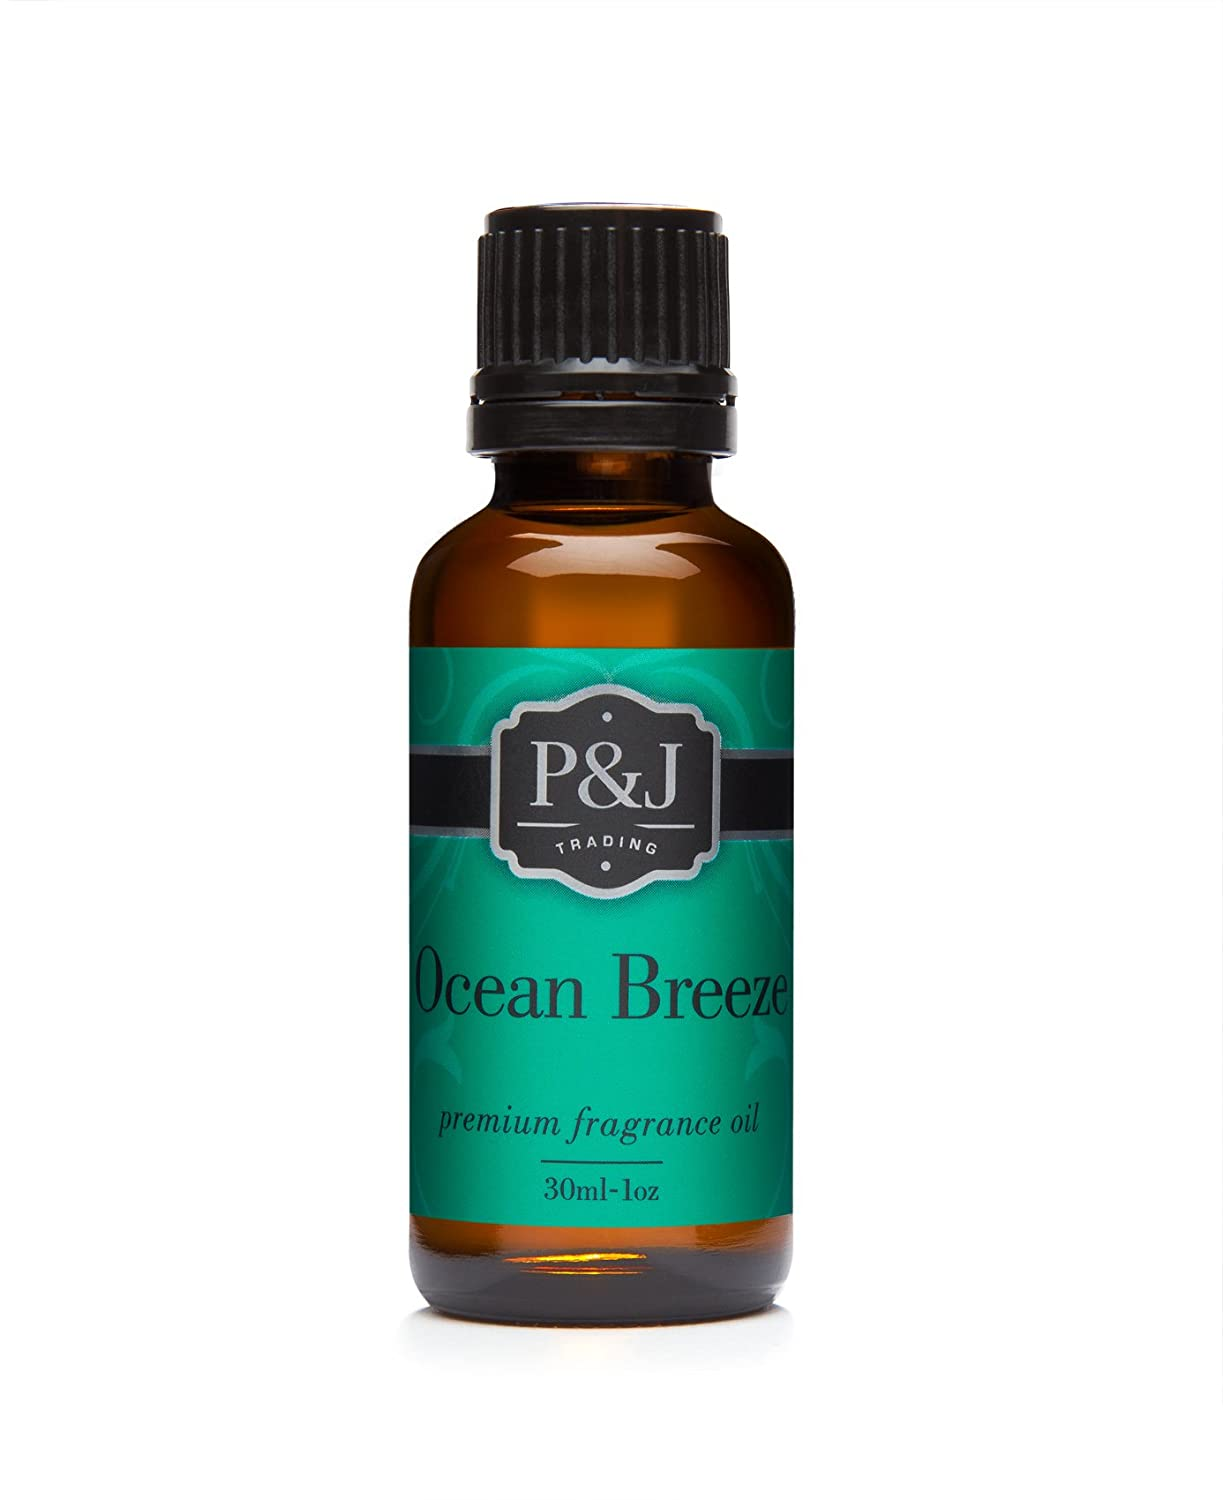 Ocean Breeze Fragrance Oil - Premium Grade Scented Oil - 30ml